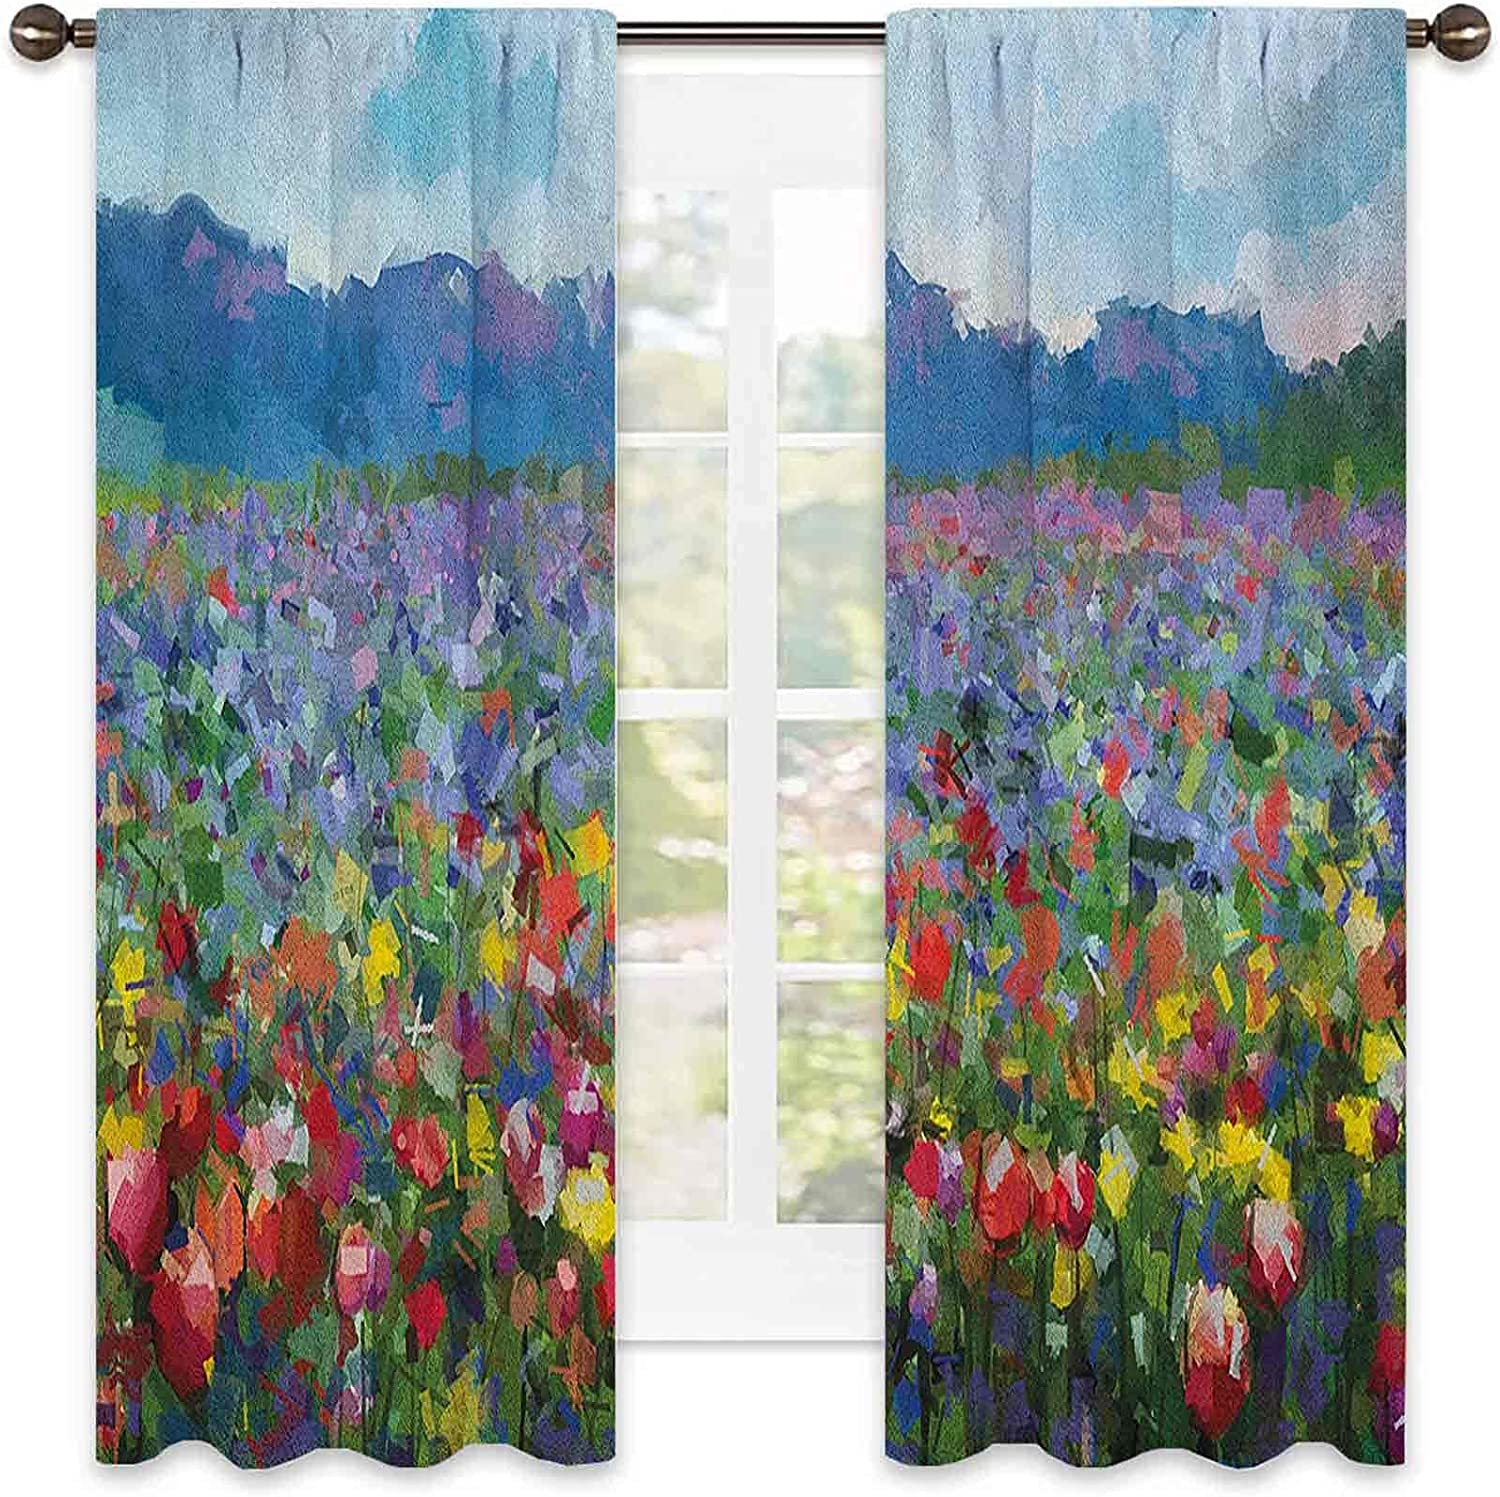 Art Super special price 99% Blackout Curtain Rural Landscape Be super welcome Fl with Tulip of Bunch